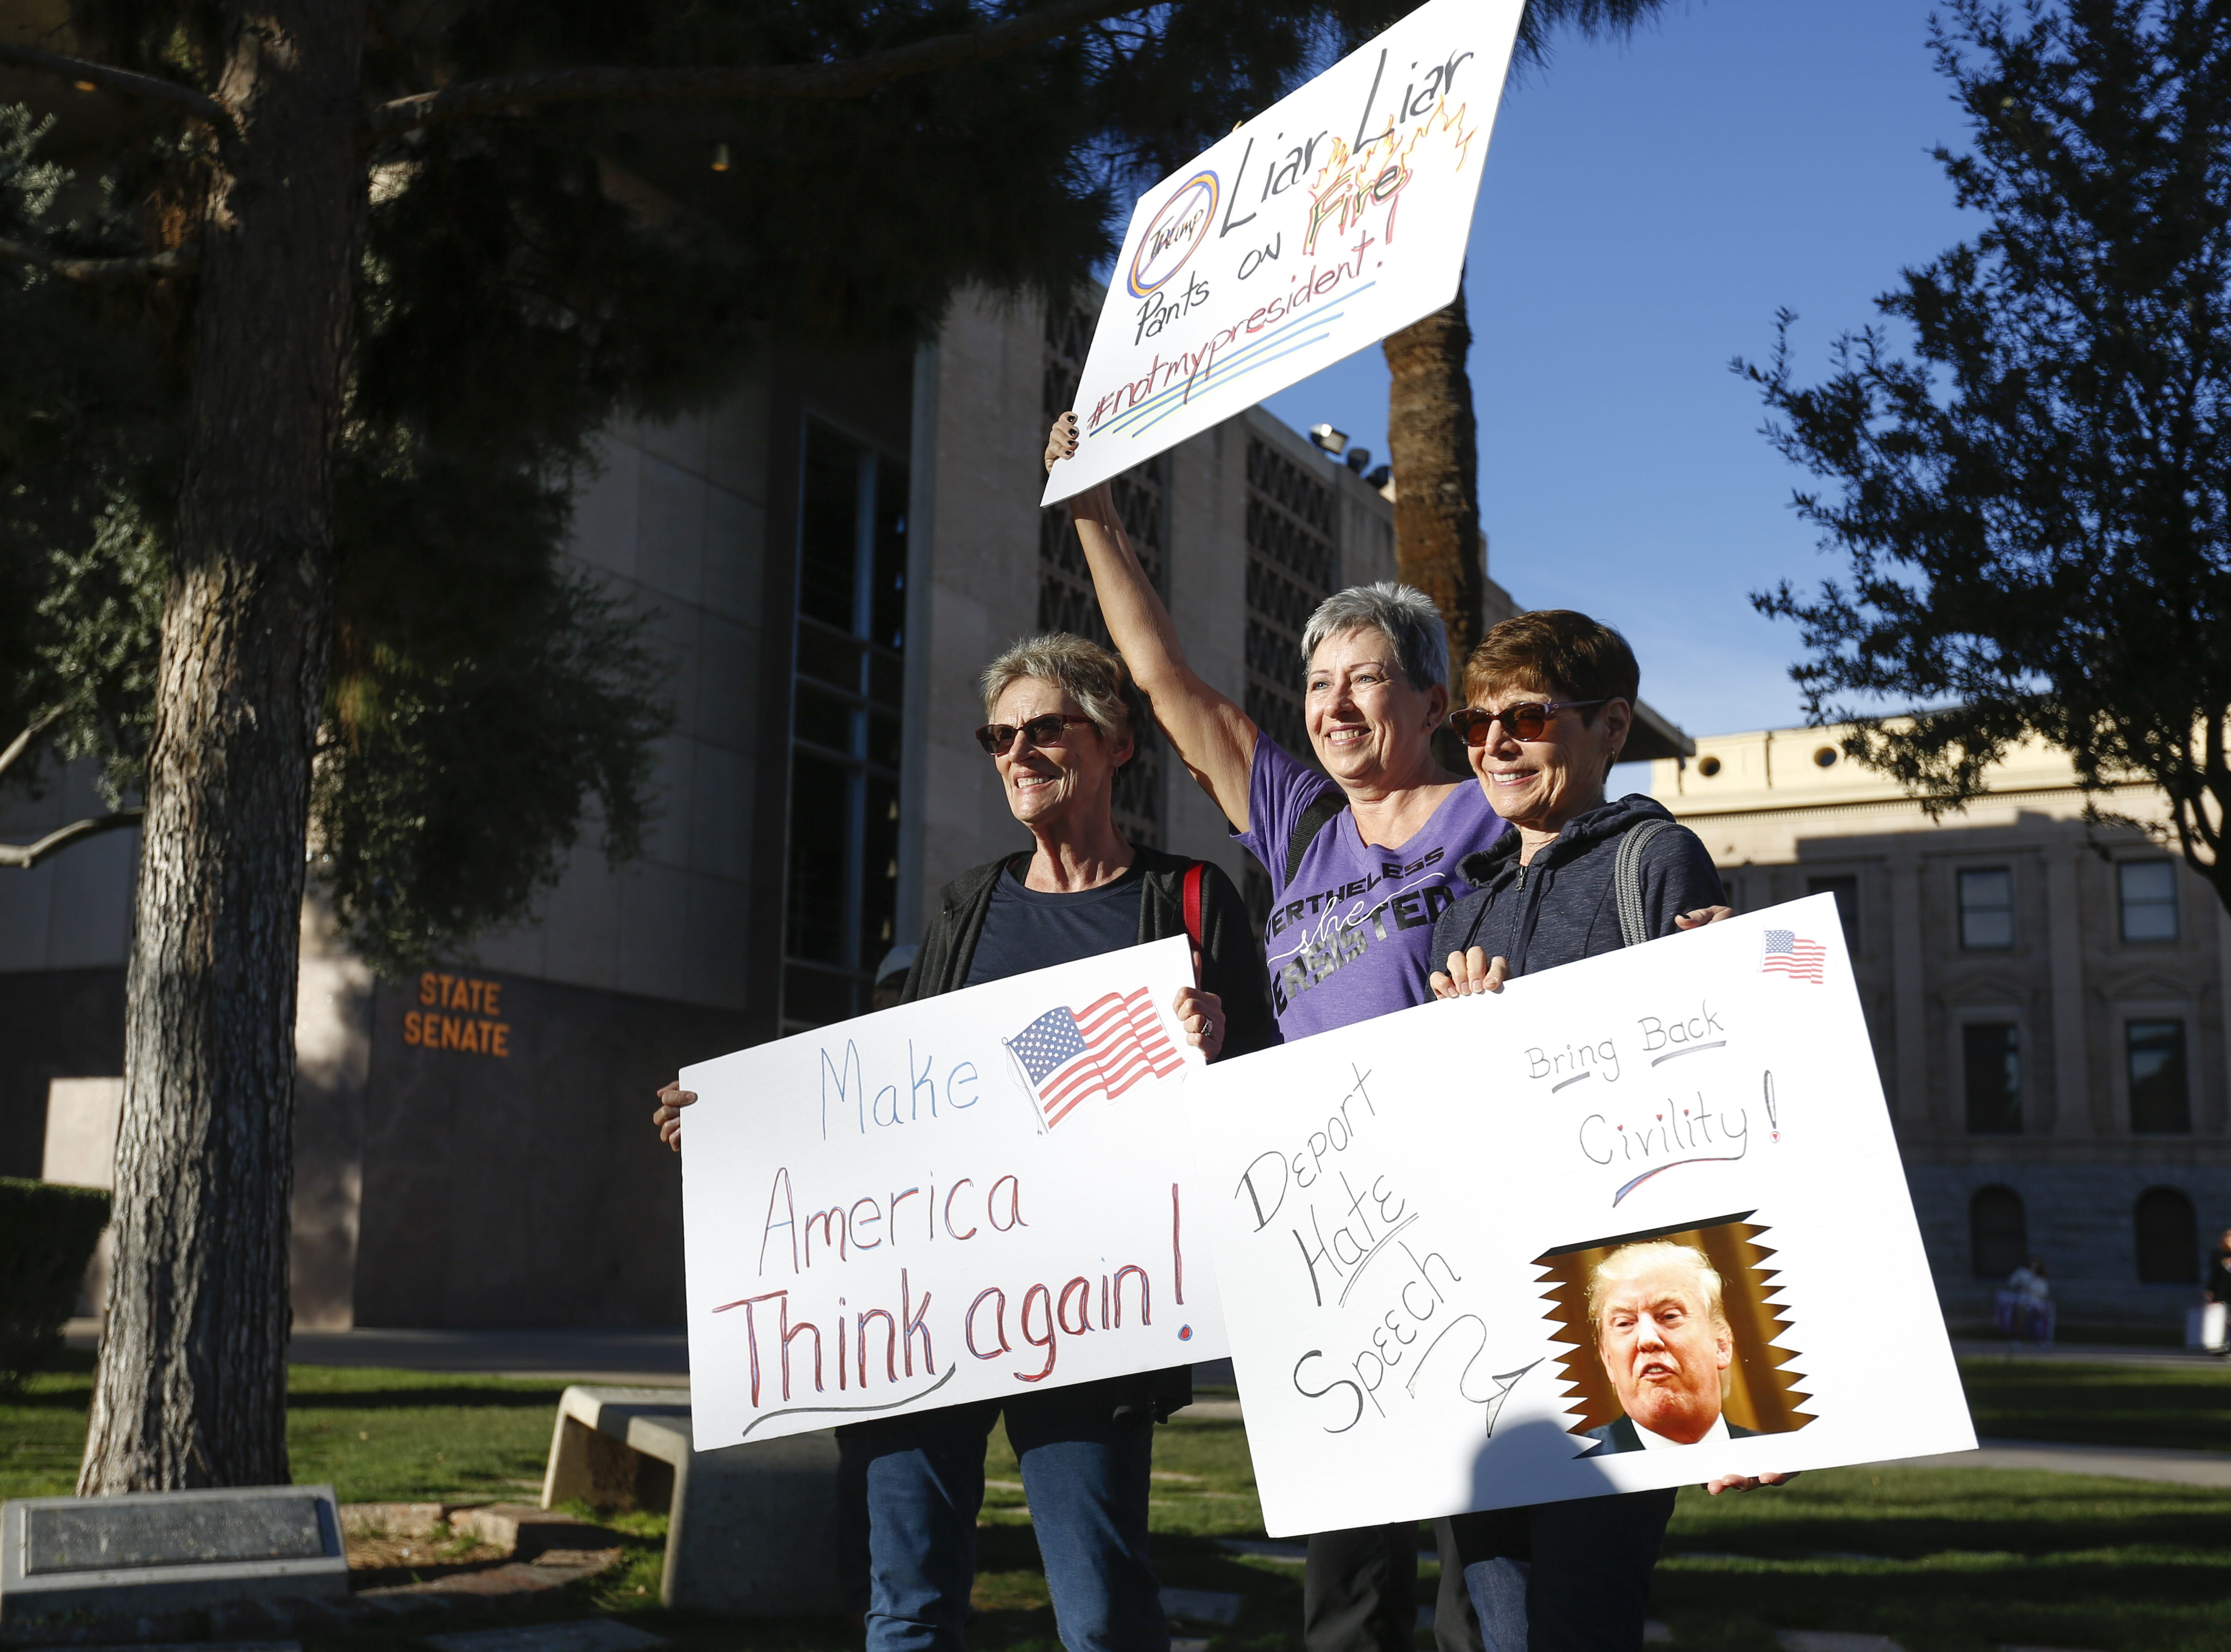 From left: Kathy Collison, Carla Llewellyn and Louise Honike take a photo together with their signs at the Phoenix Women's March on Jan. 19, 2019, at the Arizona Capitol.